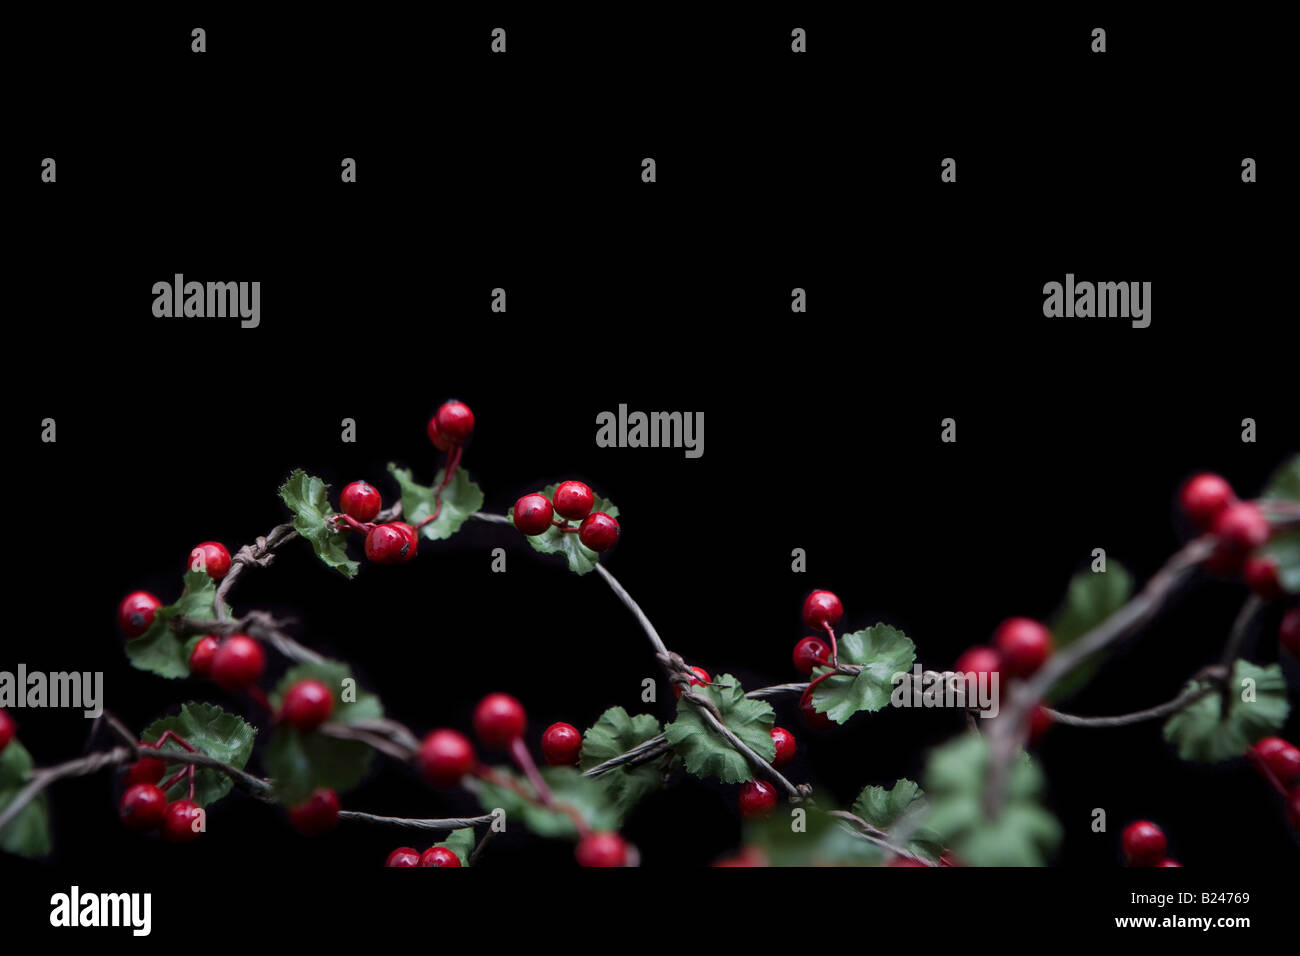 Holly - Stock Image